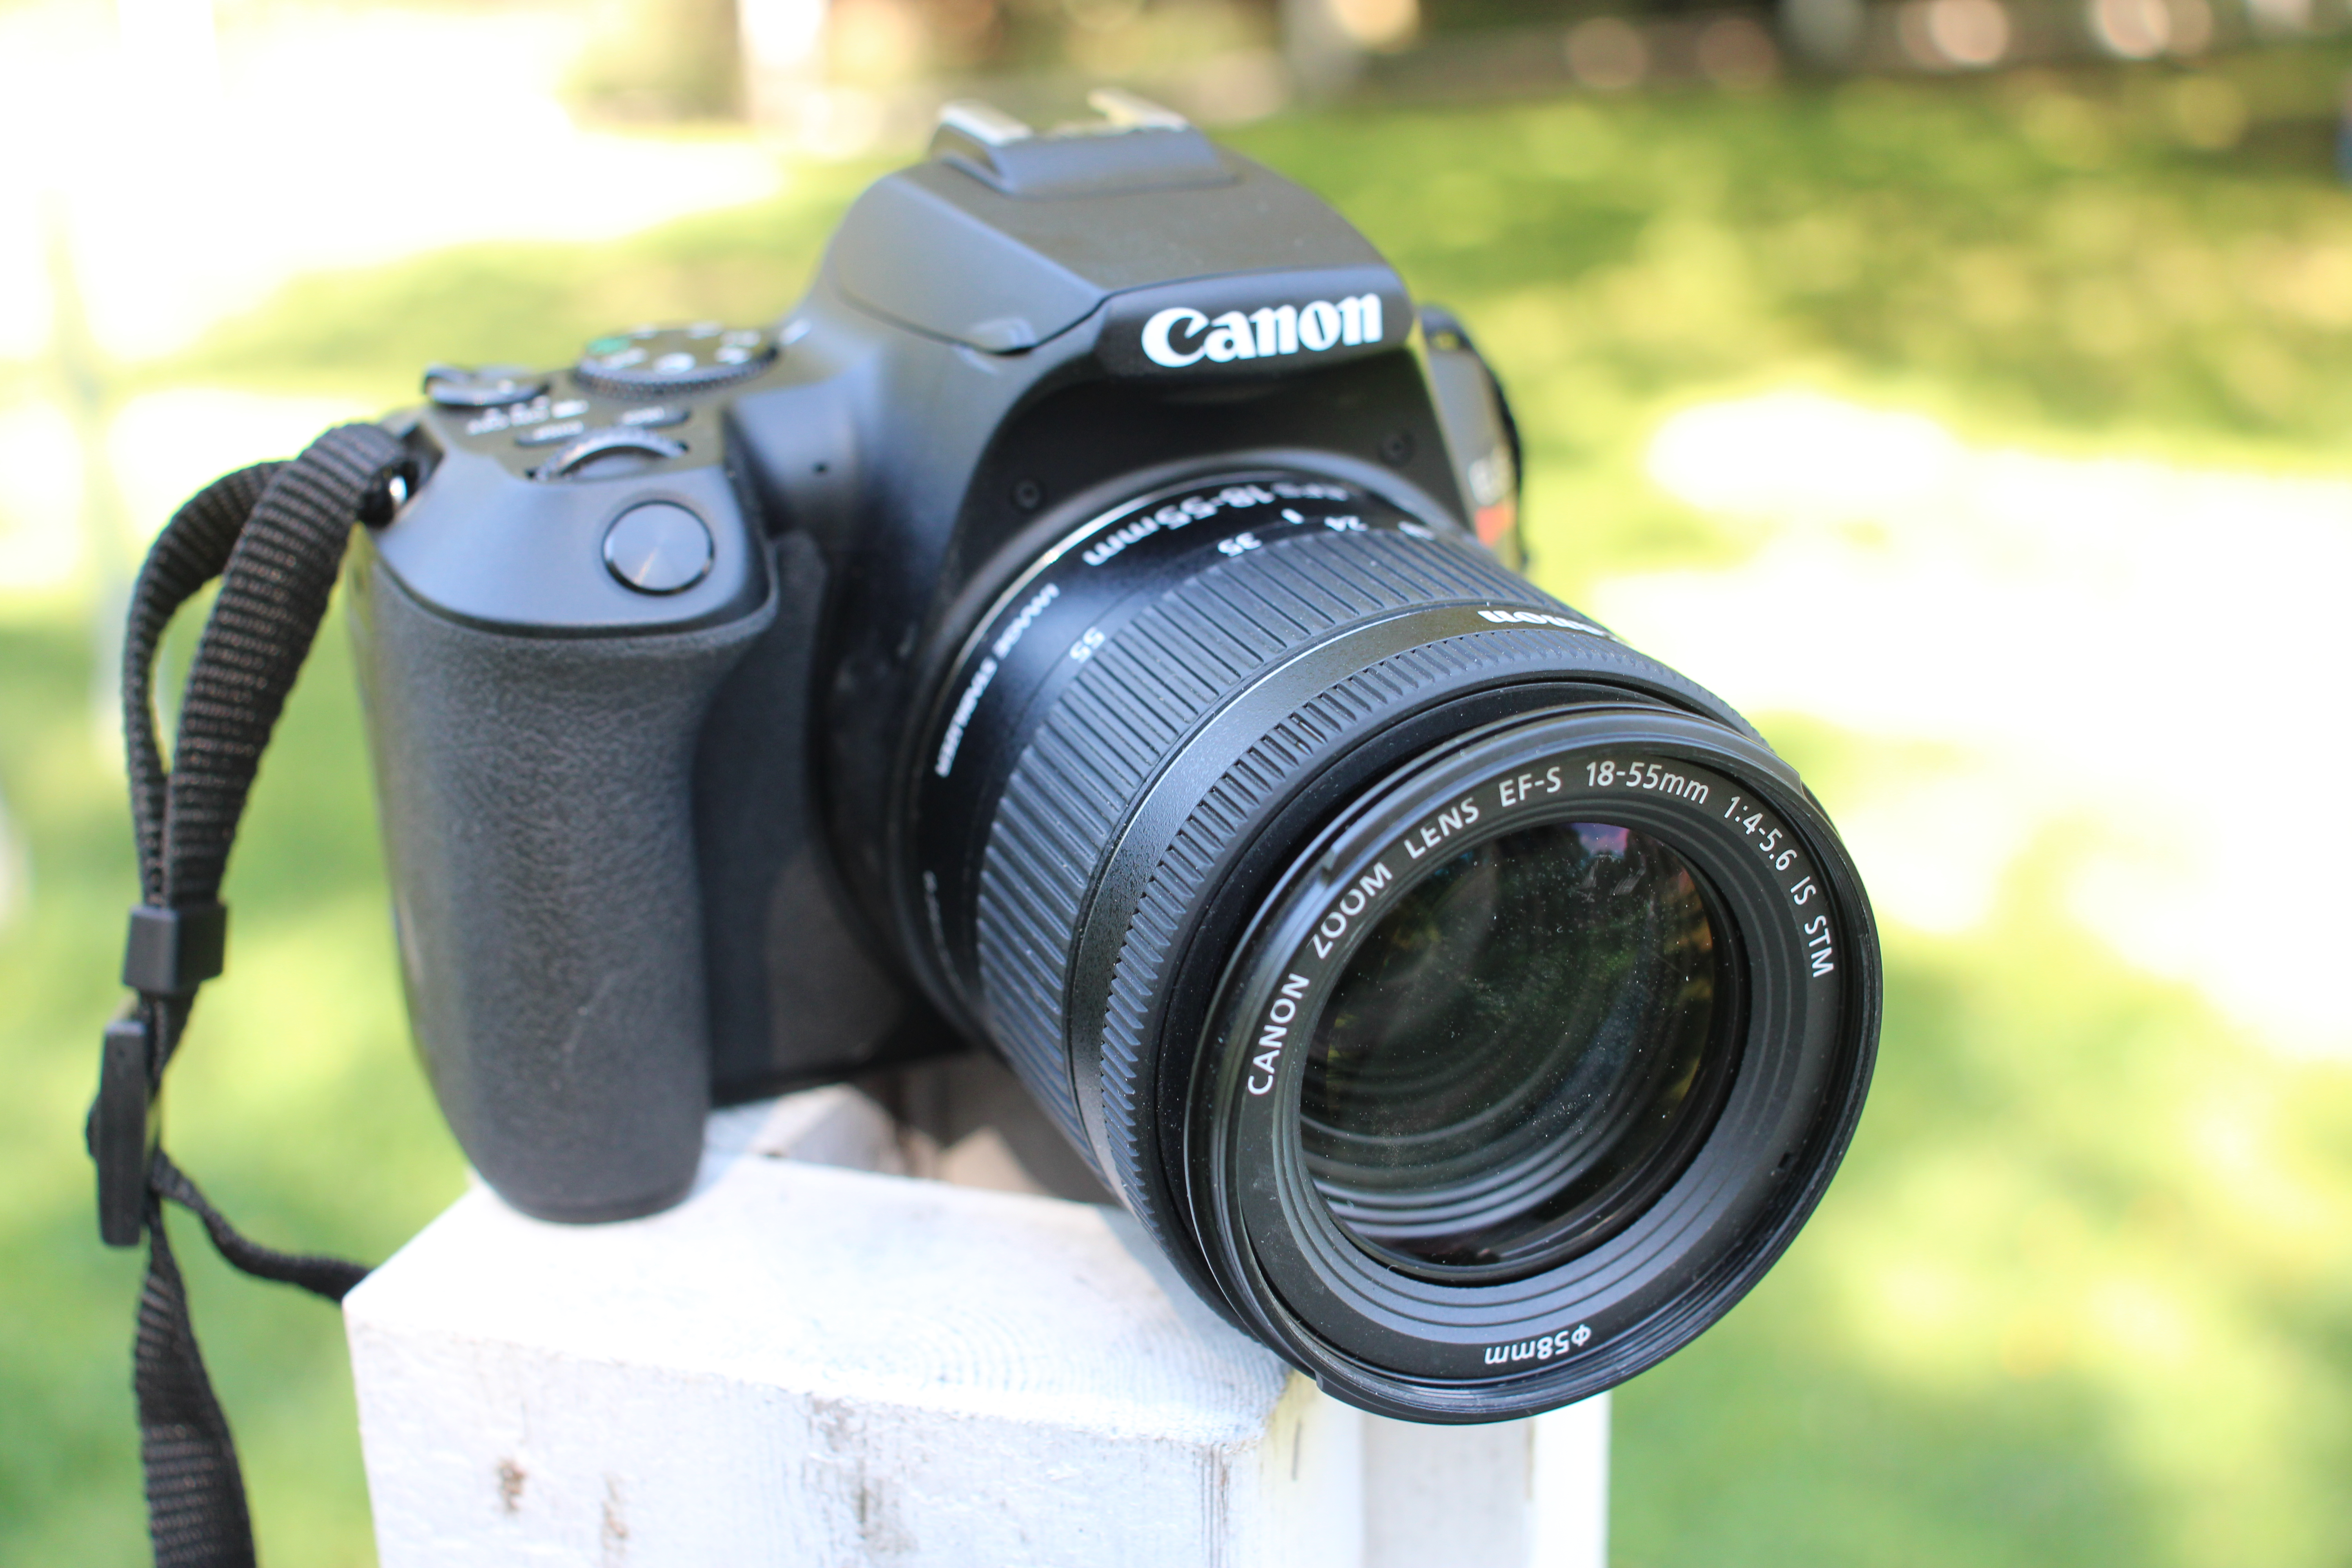 Canon SL3 front view